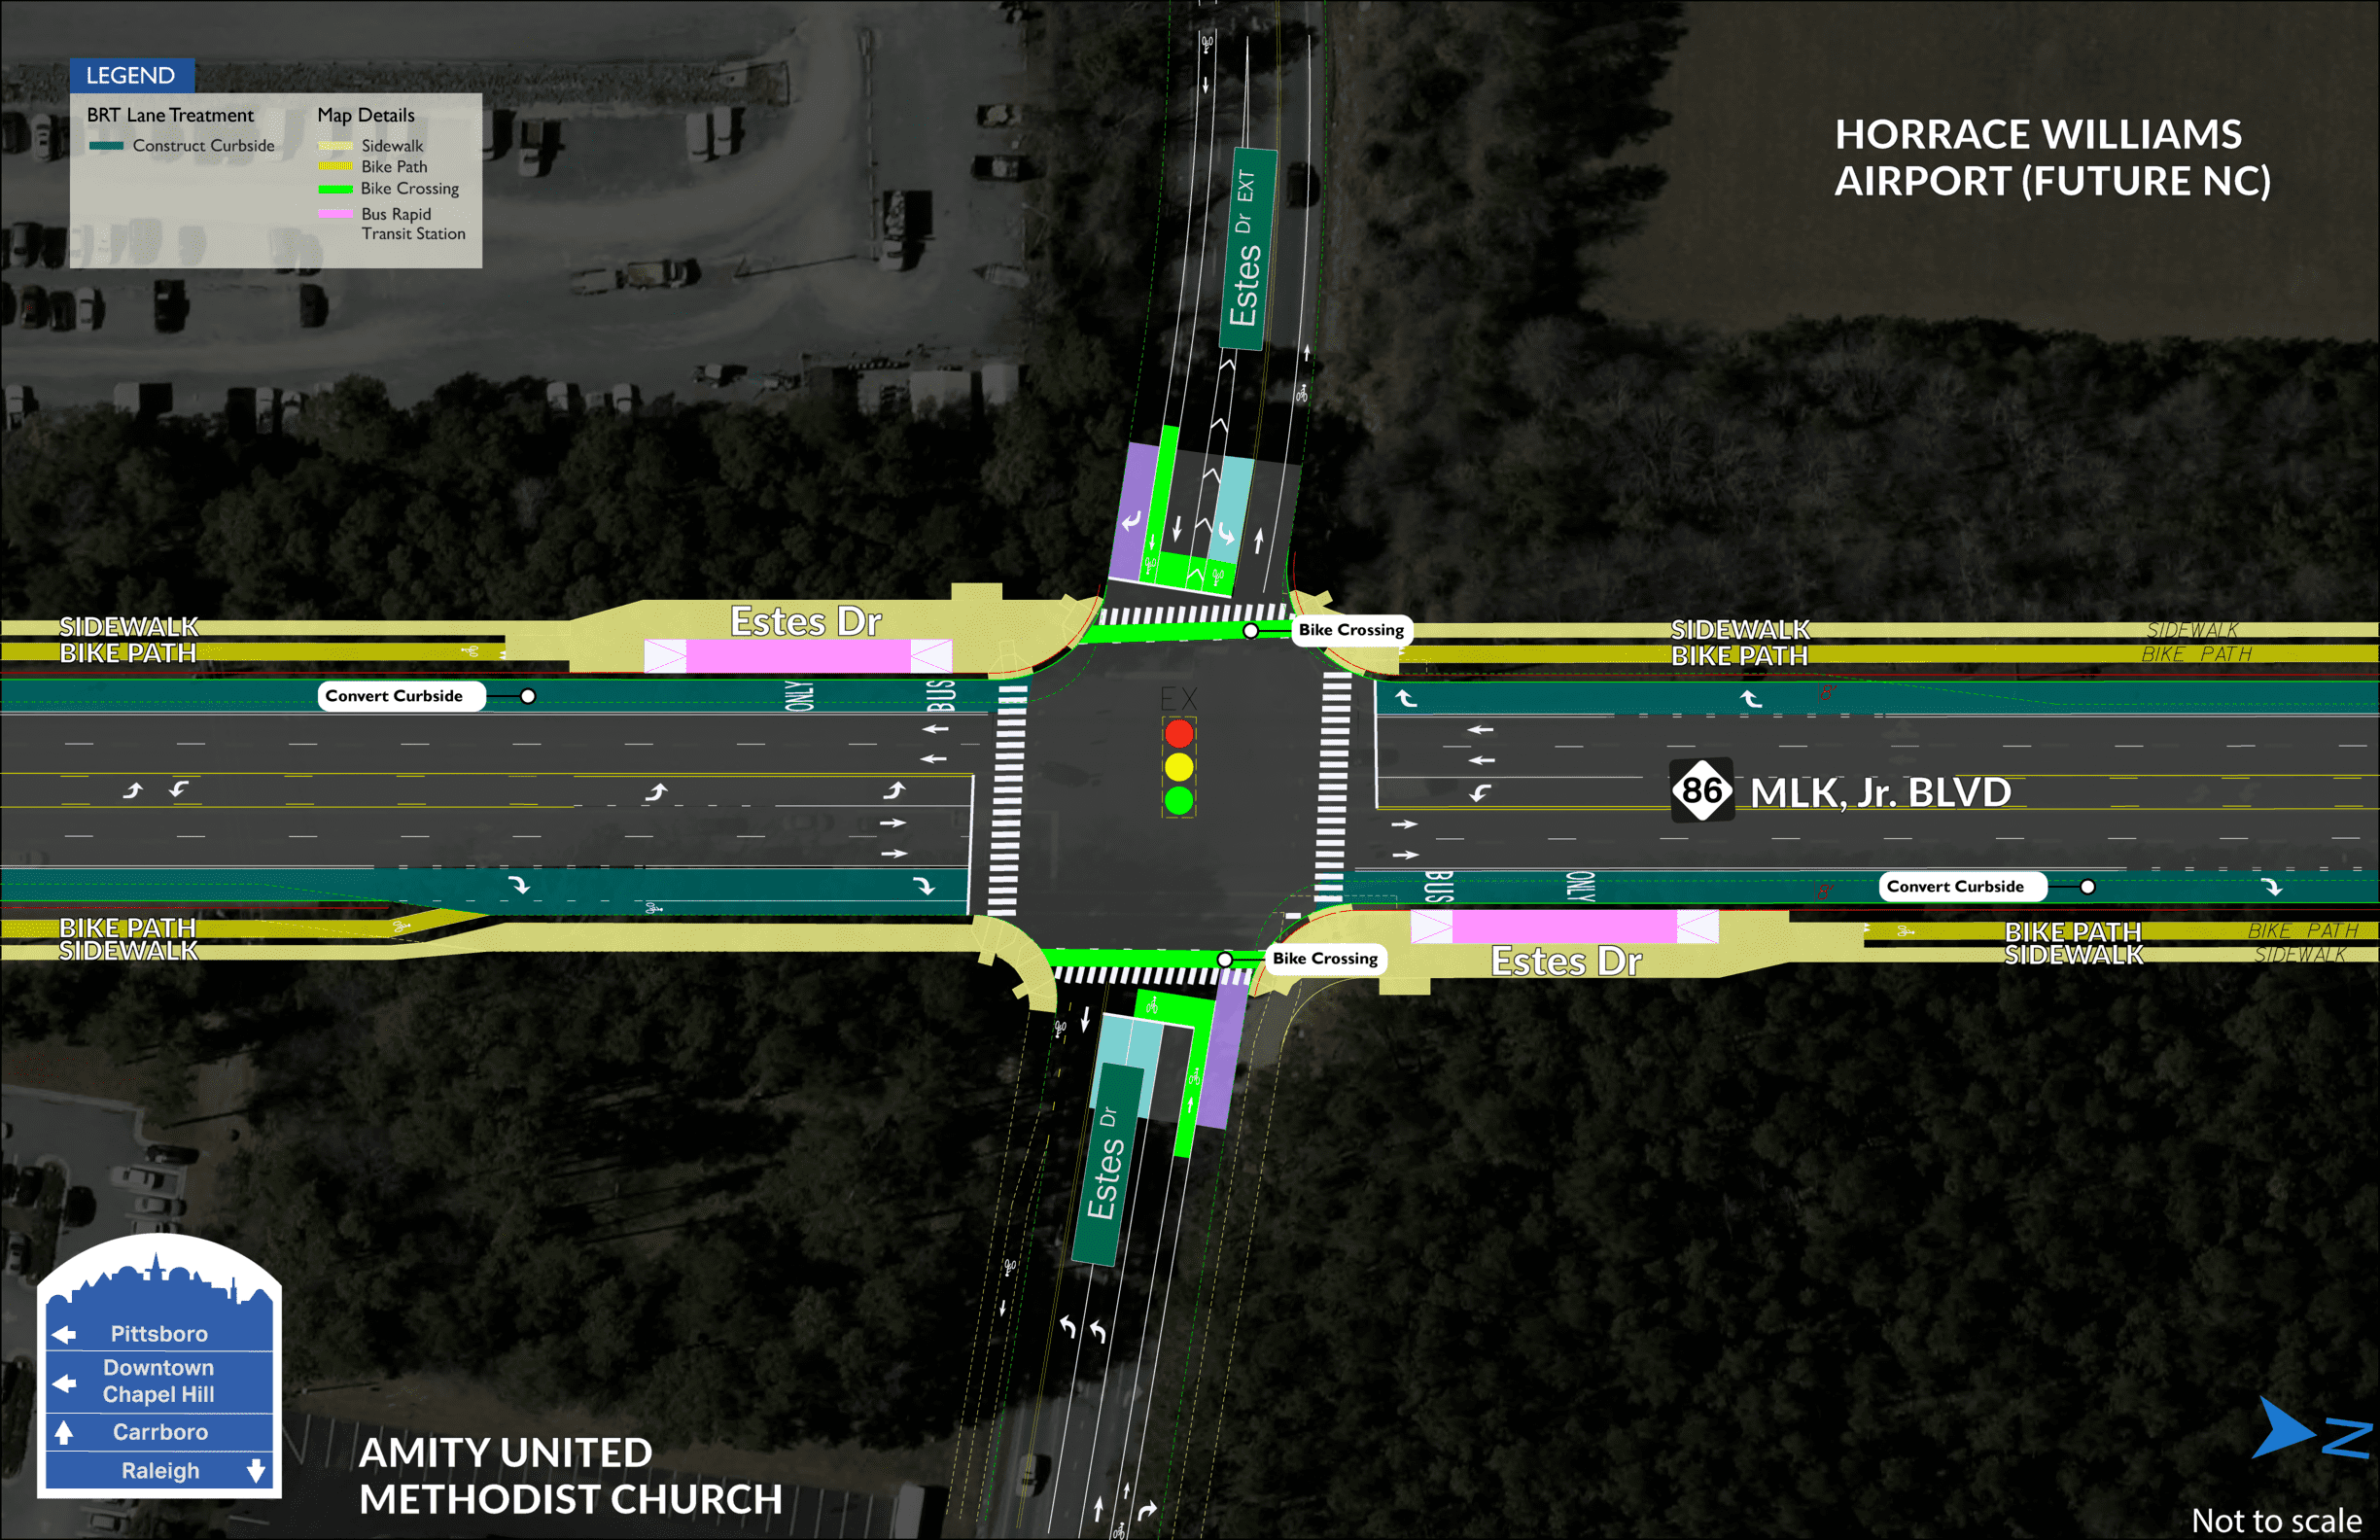 Estes BRT map showing two stations on both sides of MLK Jr. Boulevard, divided by Estes Drive.